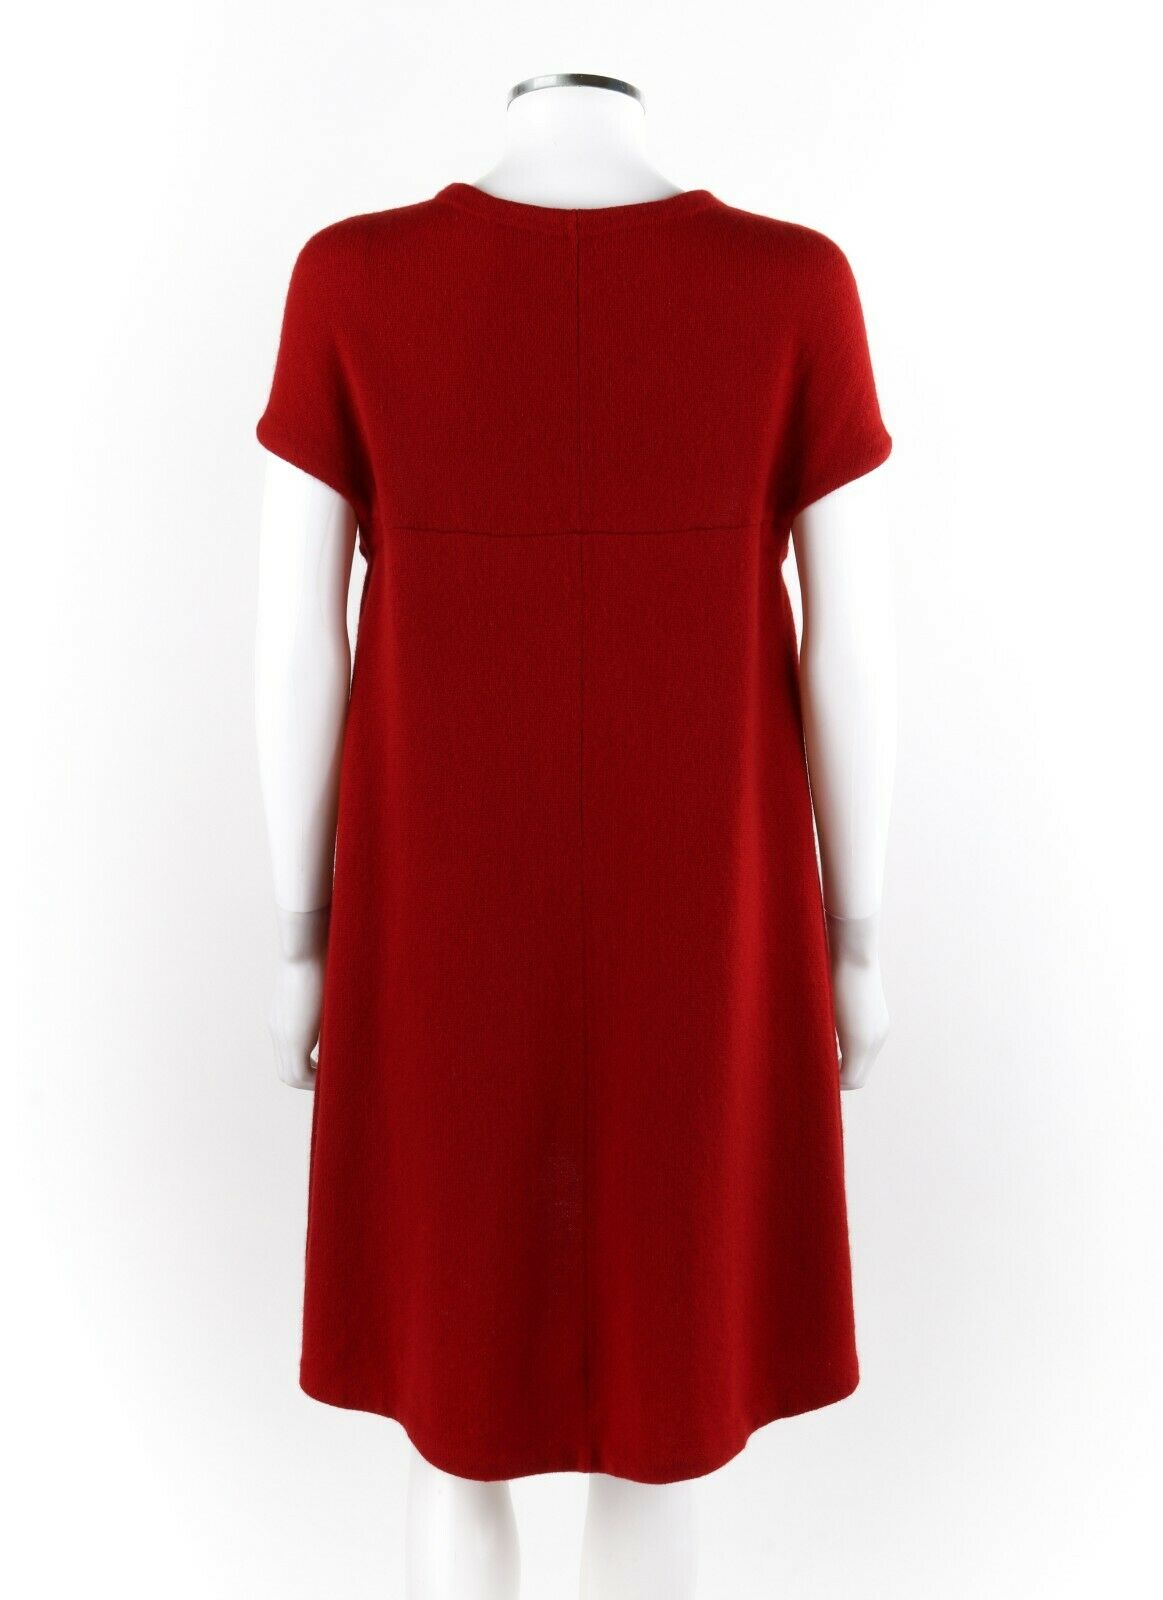 BALENCIAGA Ruby Red Knit High Low Cap Sleeve Mini… - image 3